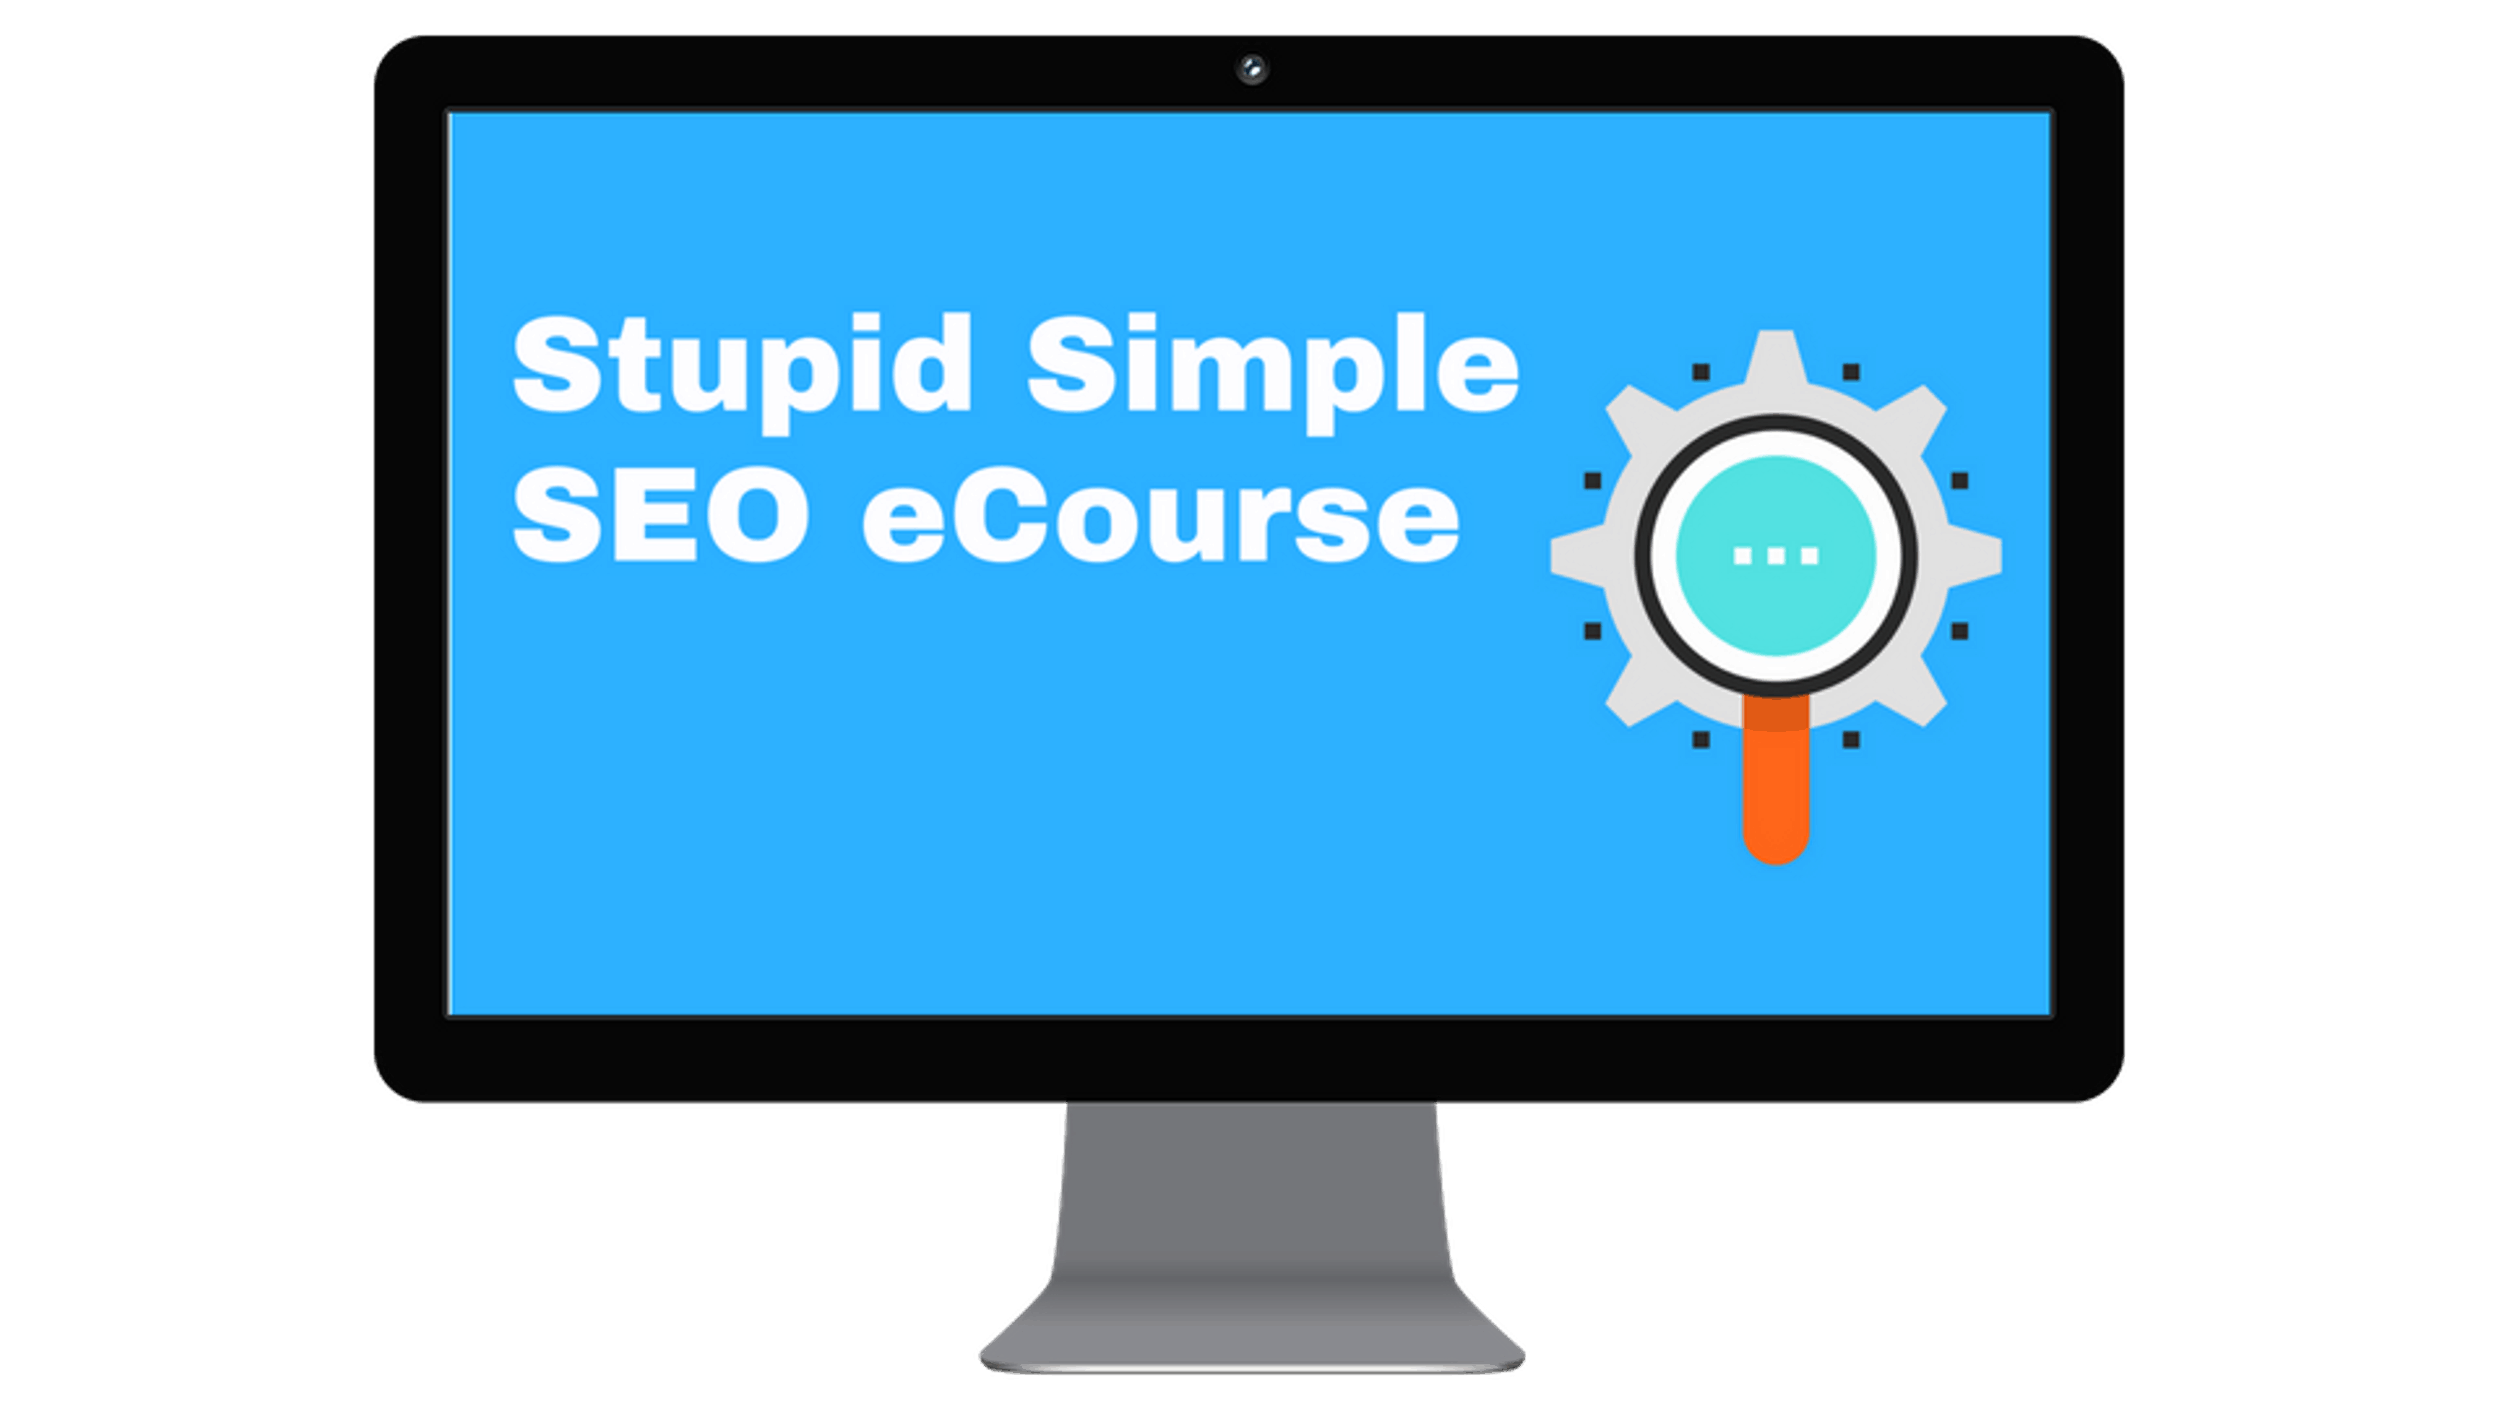 stupid simple seo ecourse